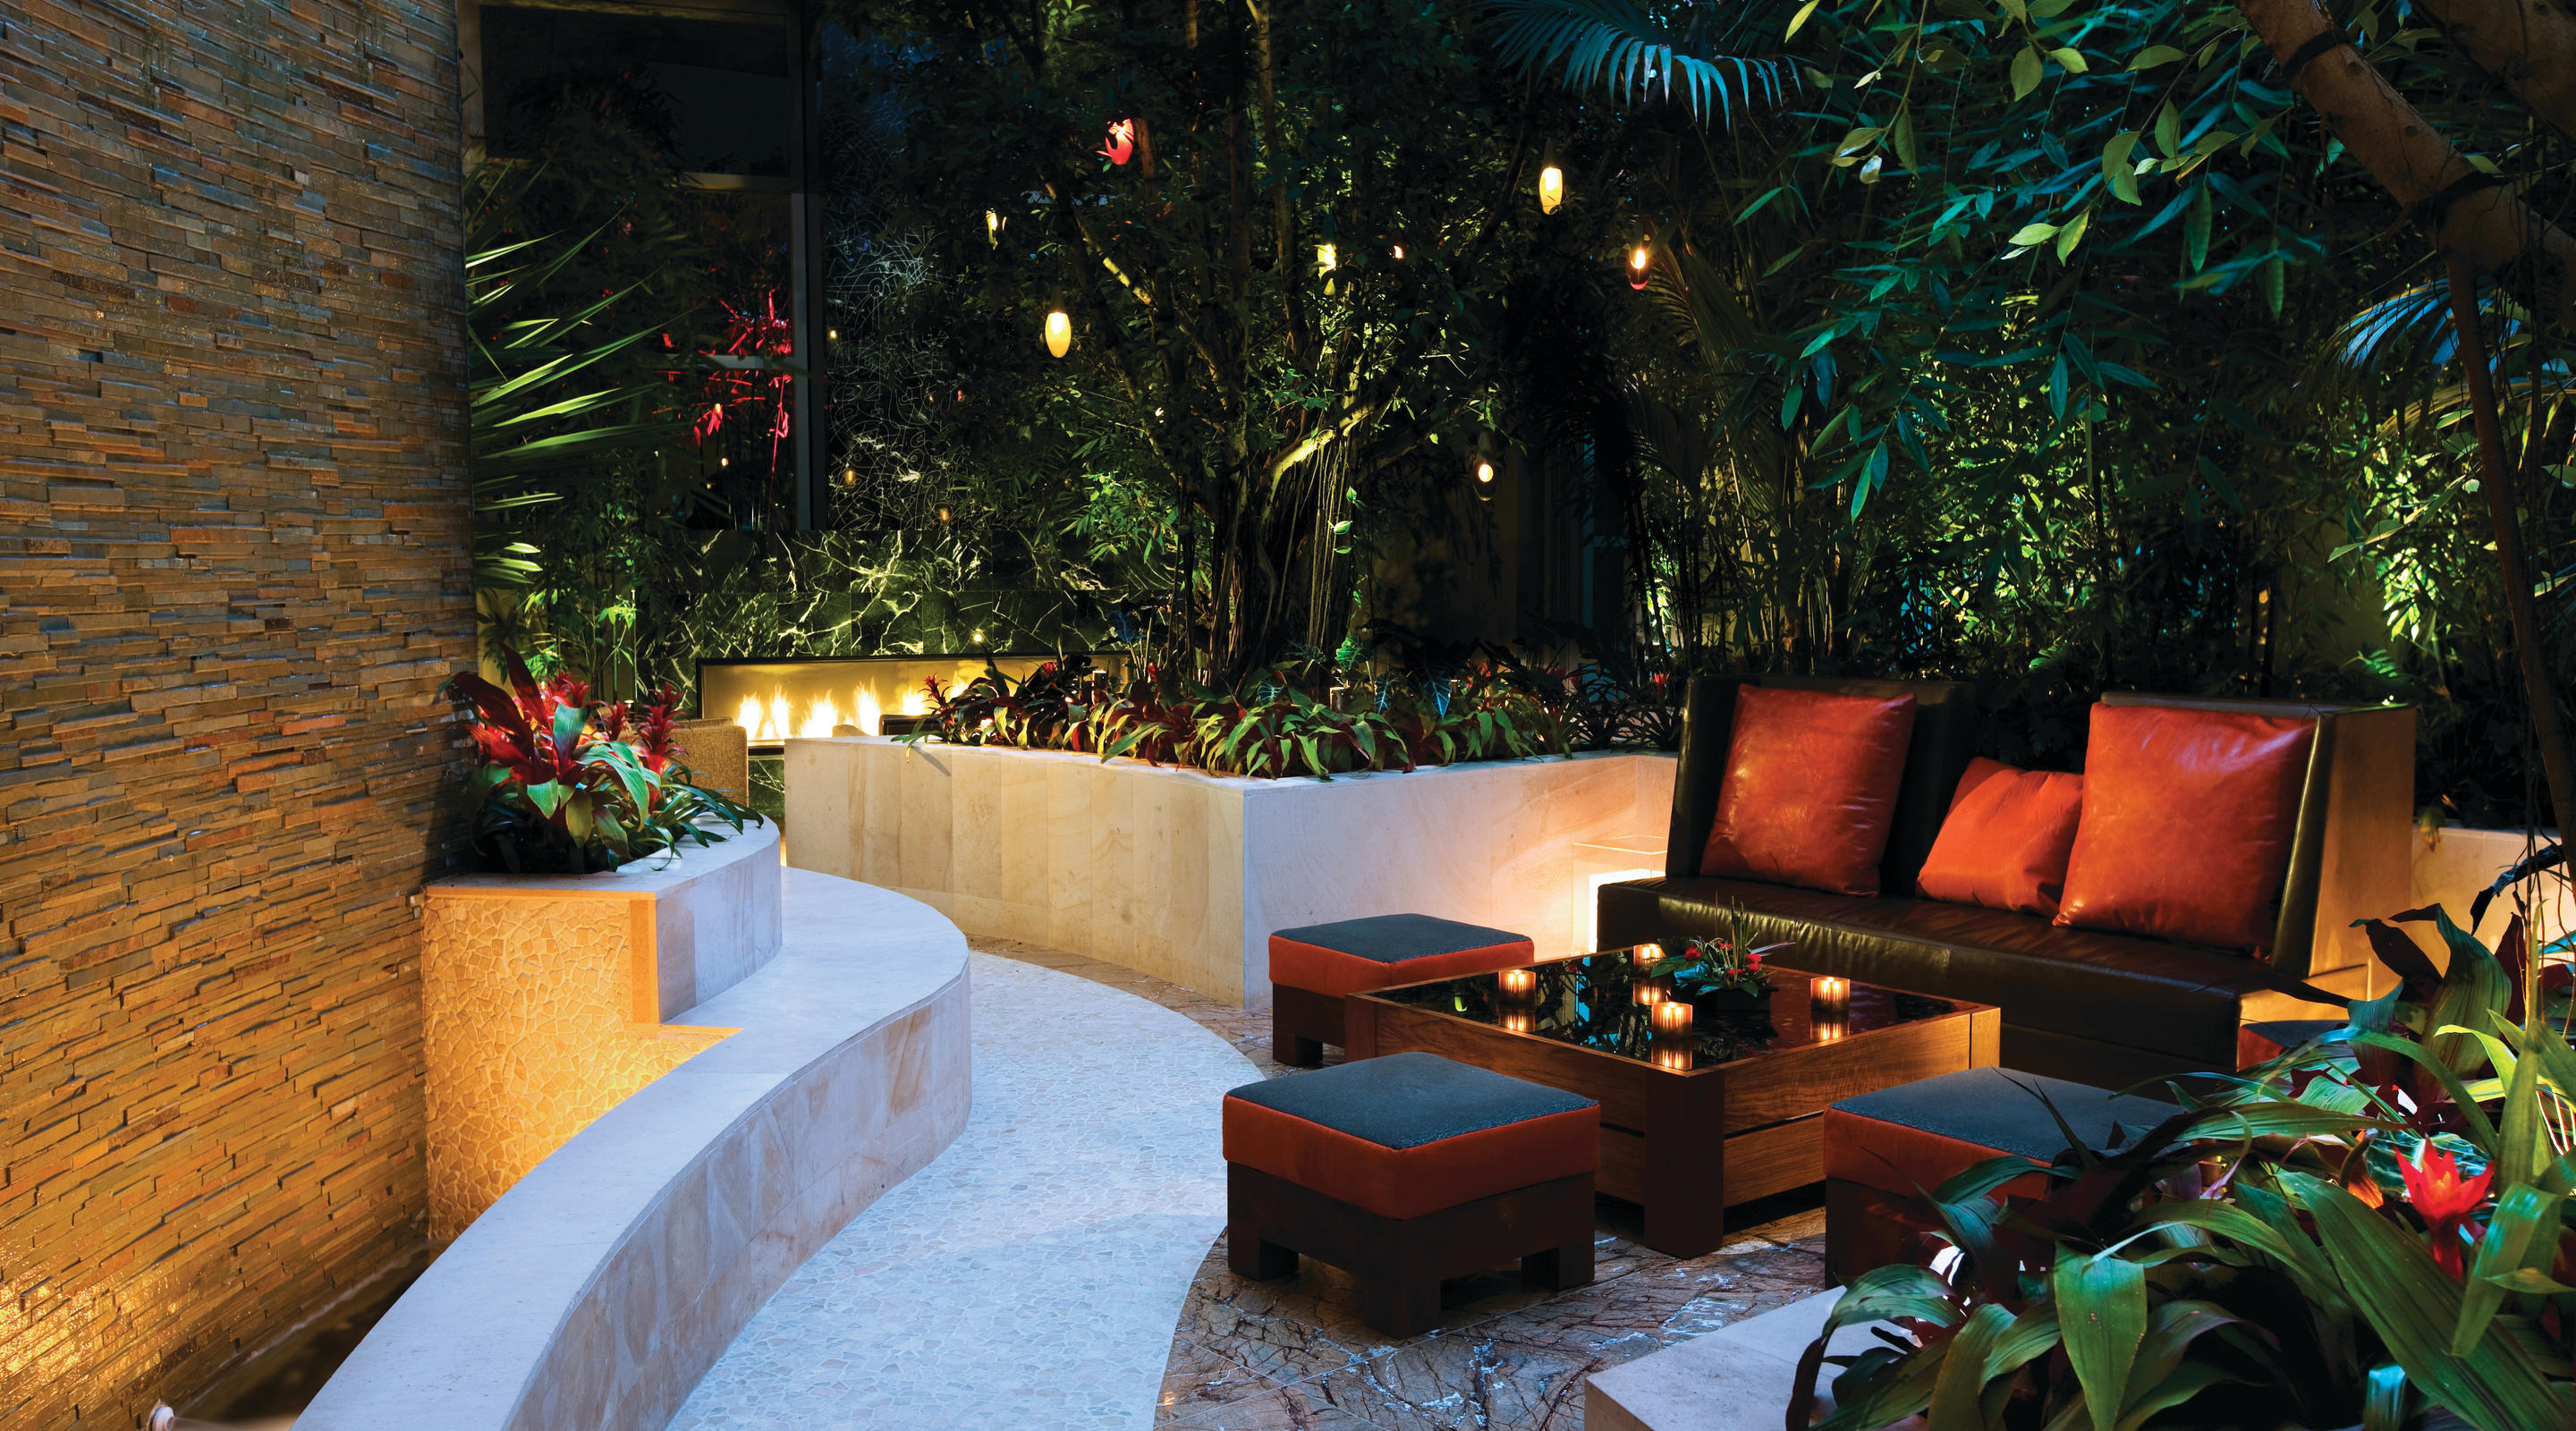 Outdoor Courtyard styled Lounge area